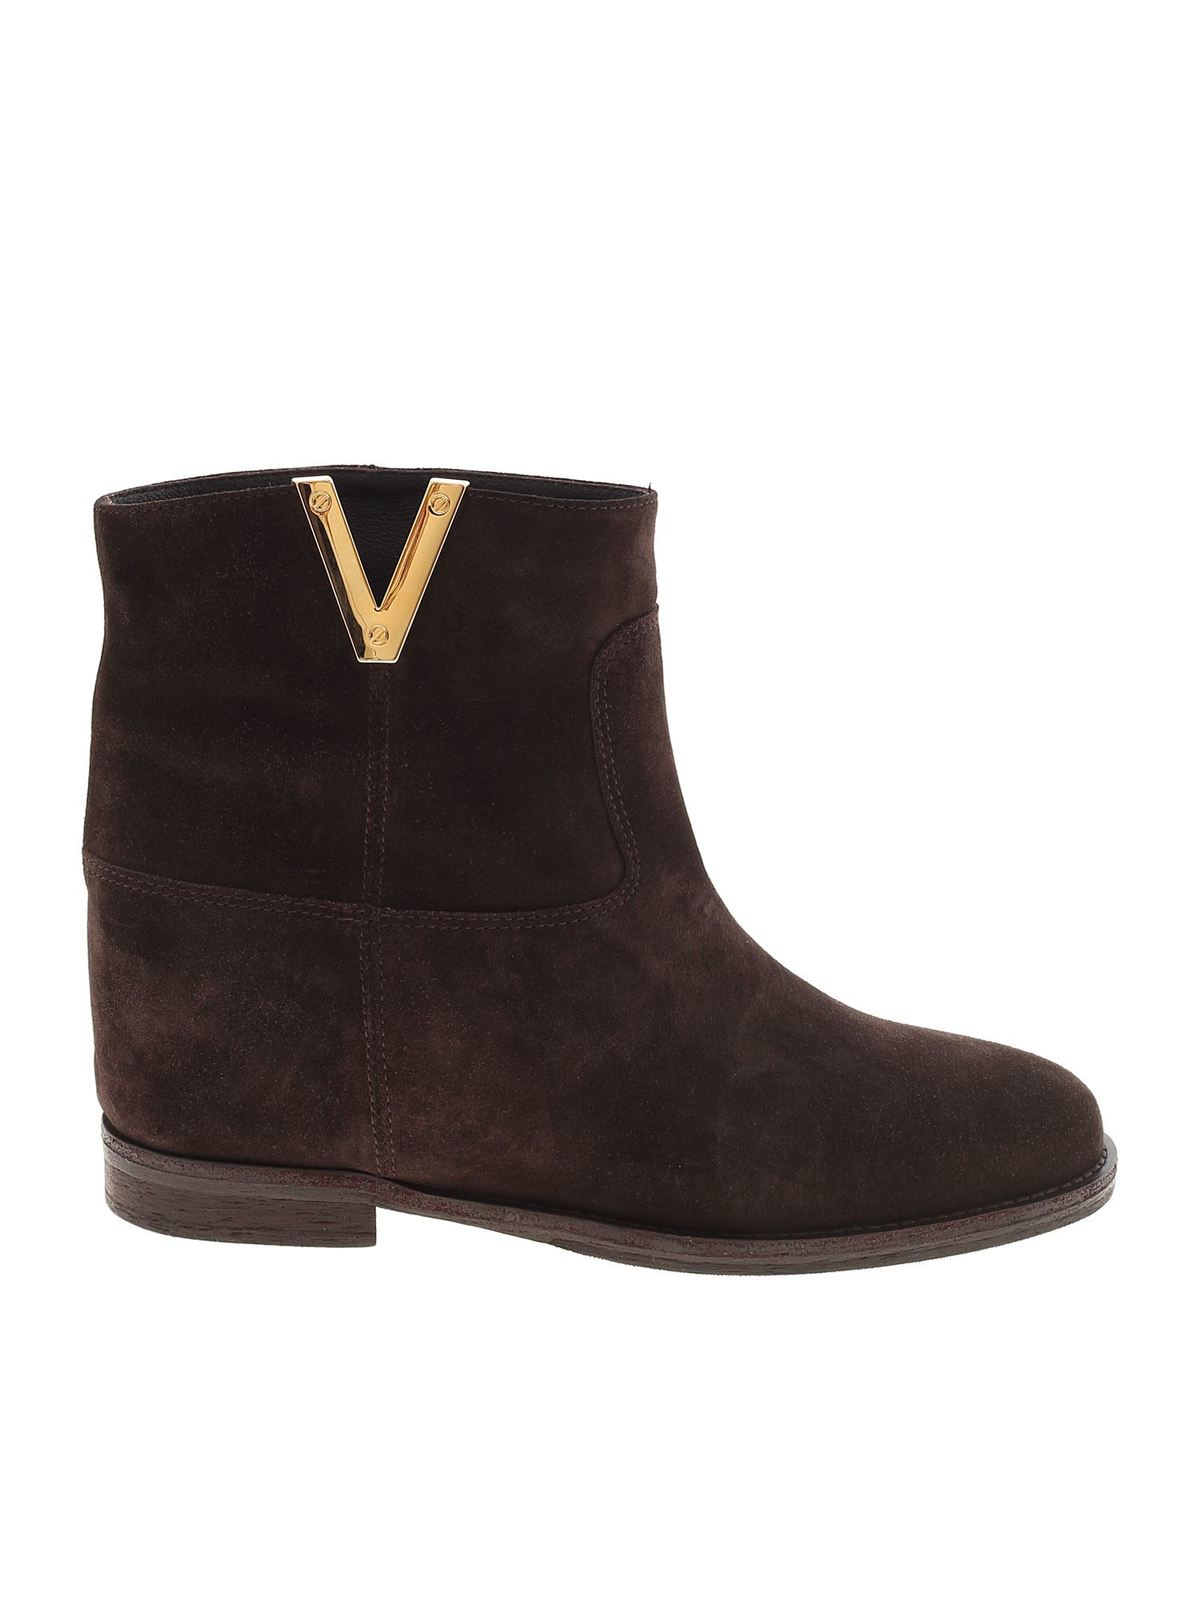 Via Roma 15 2576 SUEDE ANKLE BOOTS IN BROWN